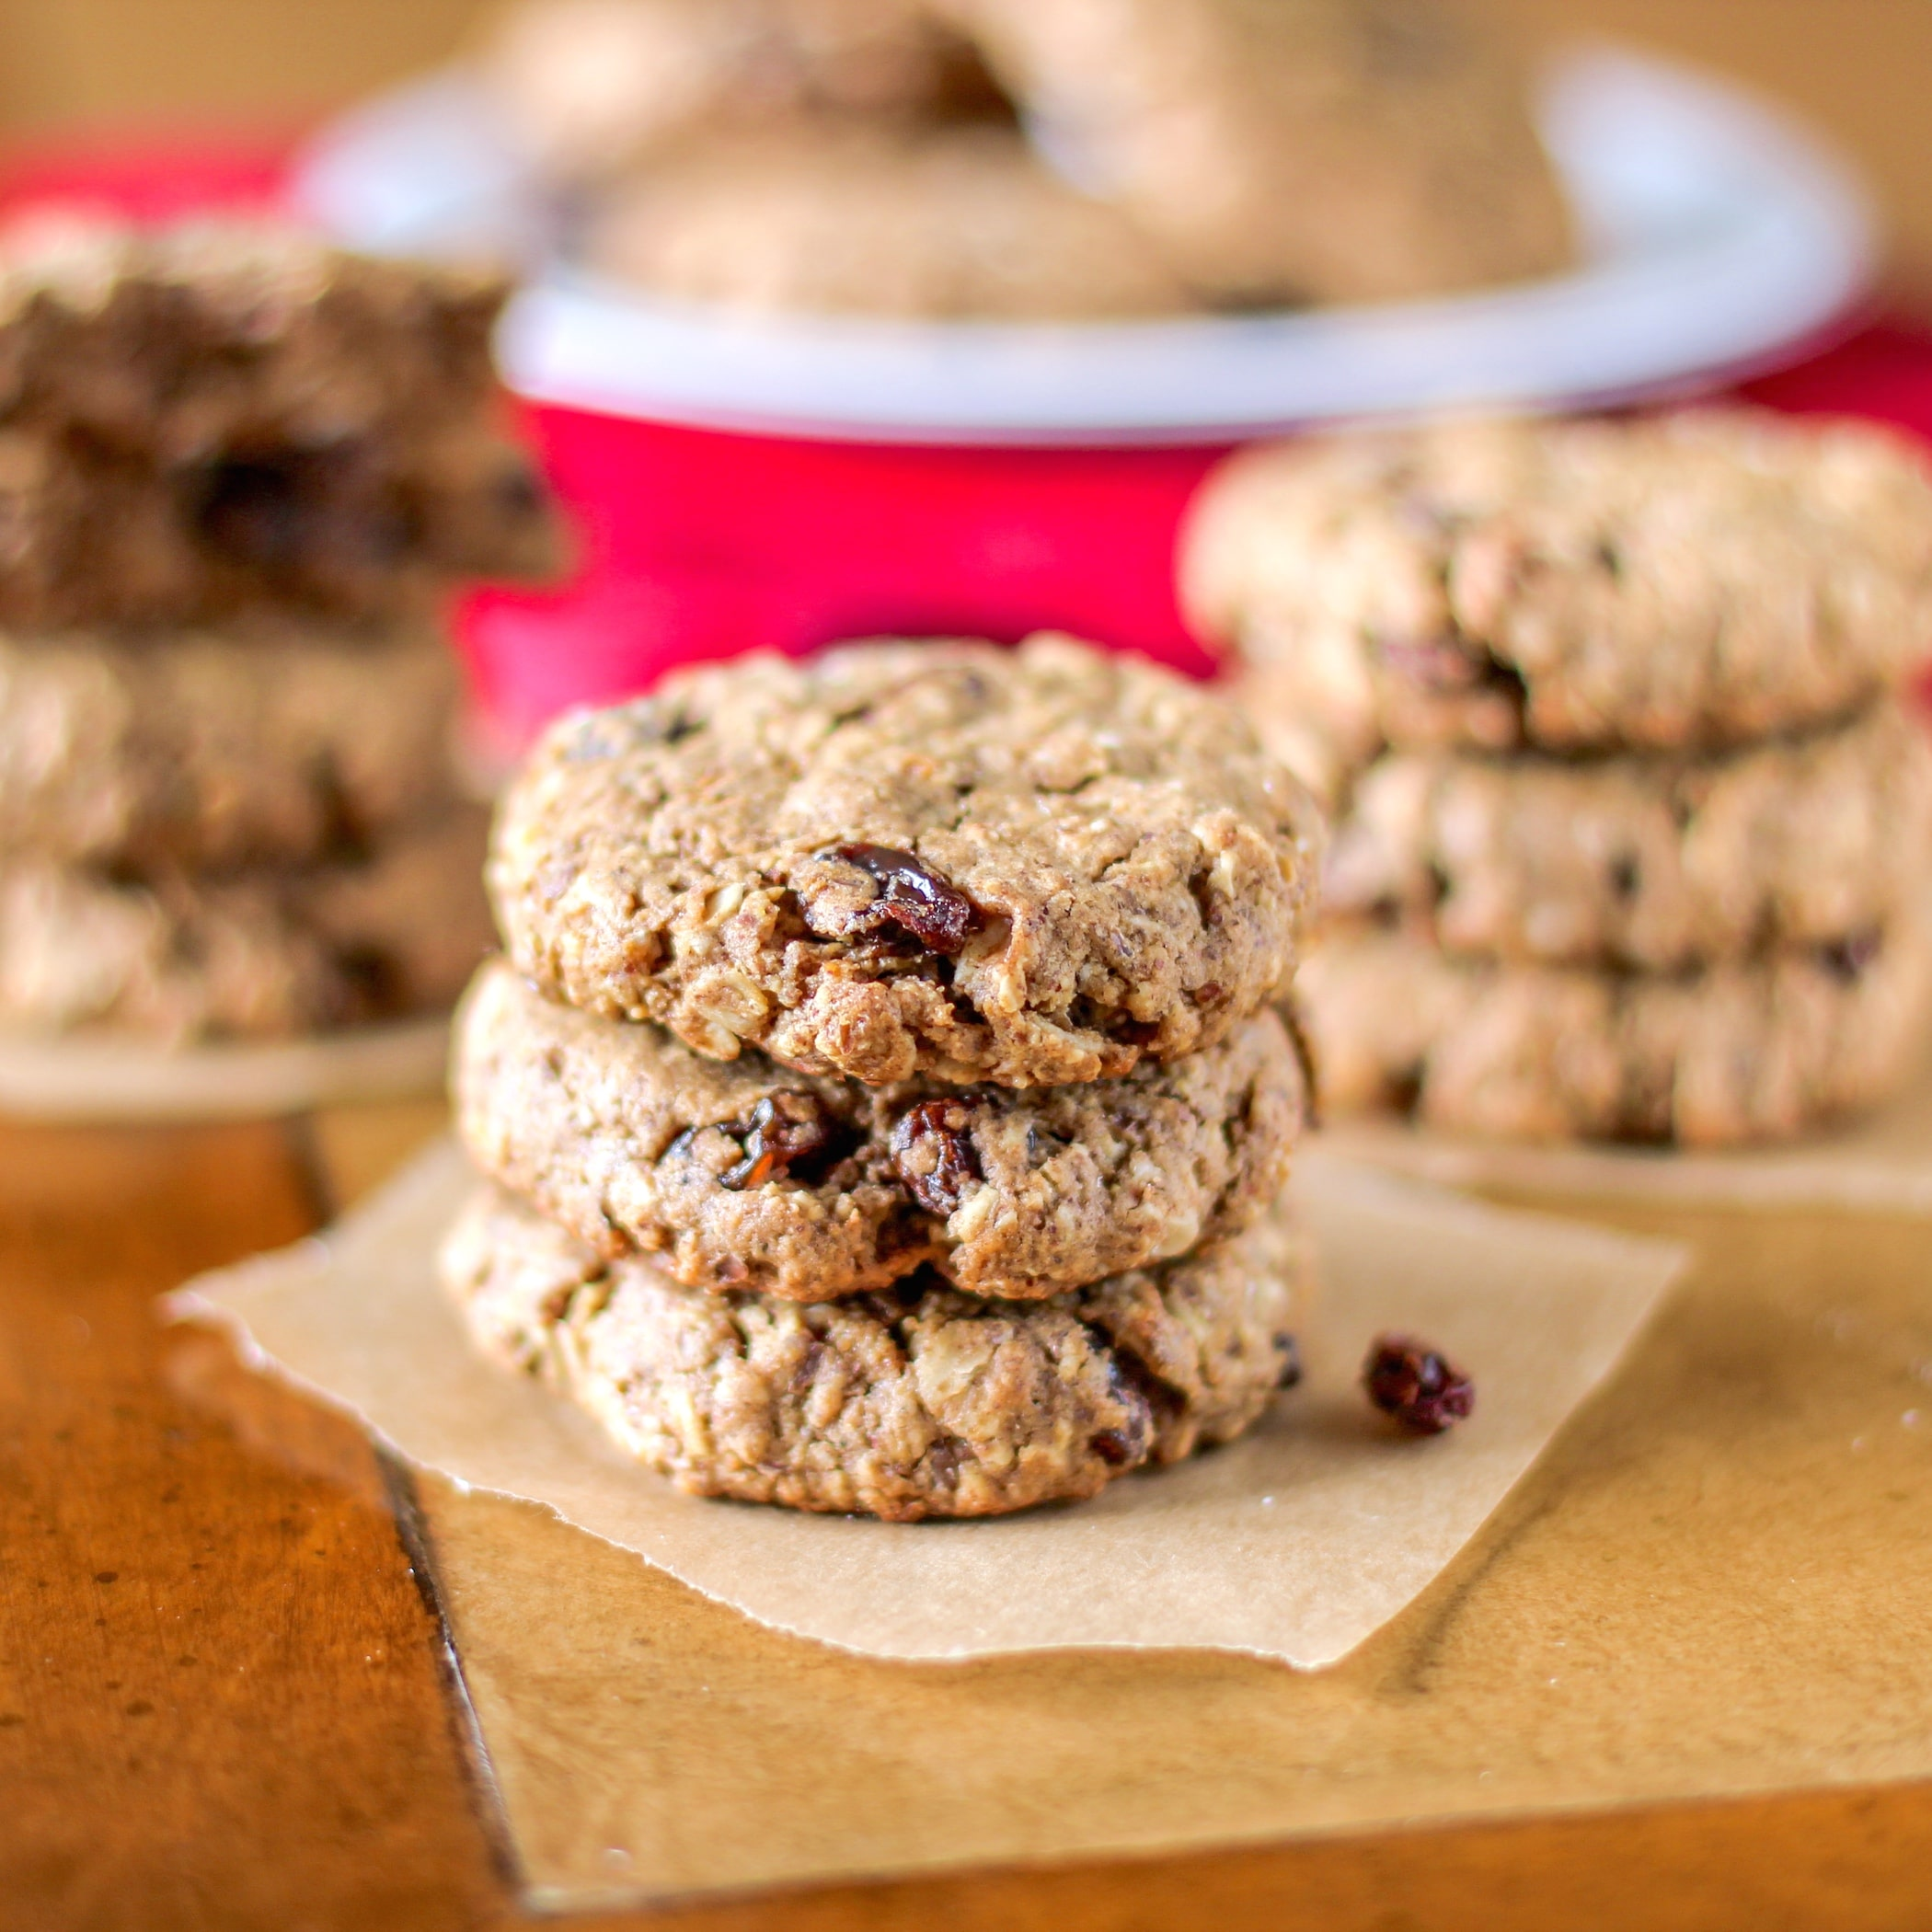 Healthy Oatmeal Raisin Cookies - Desserts With Benefits